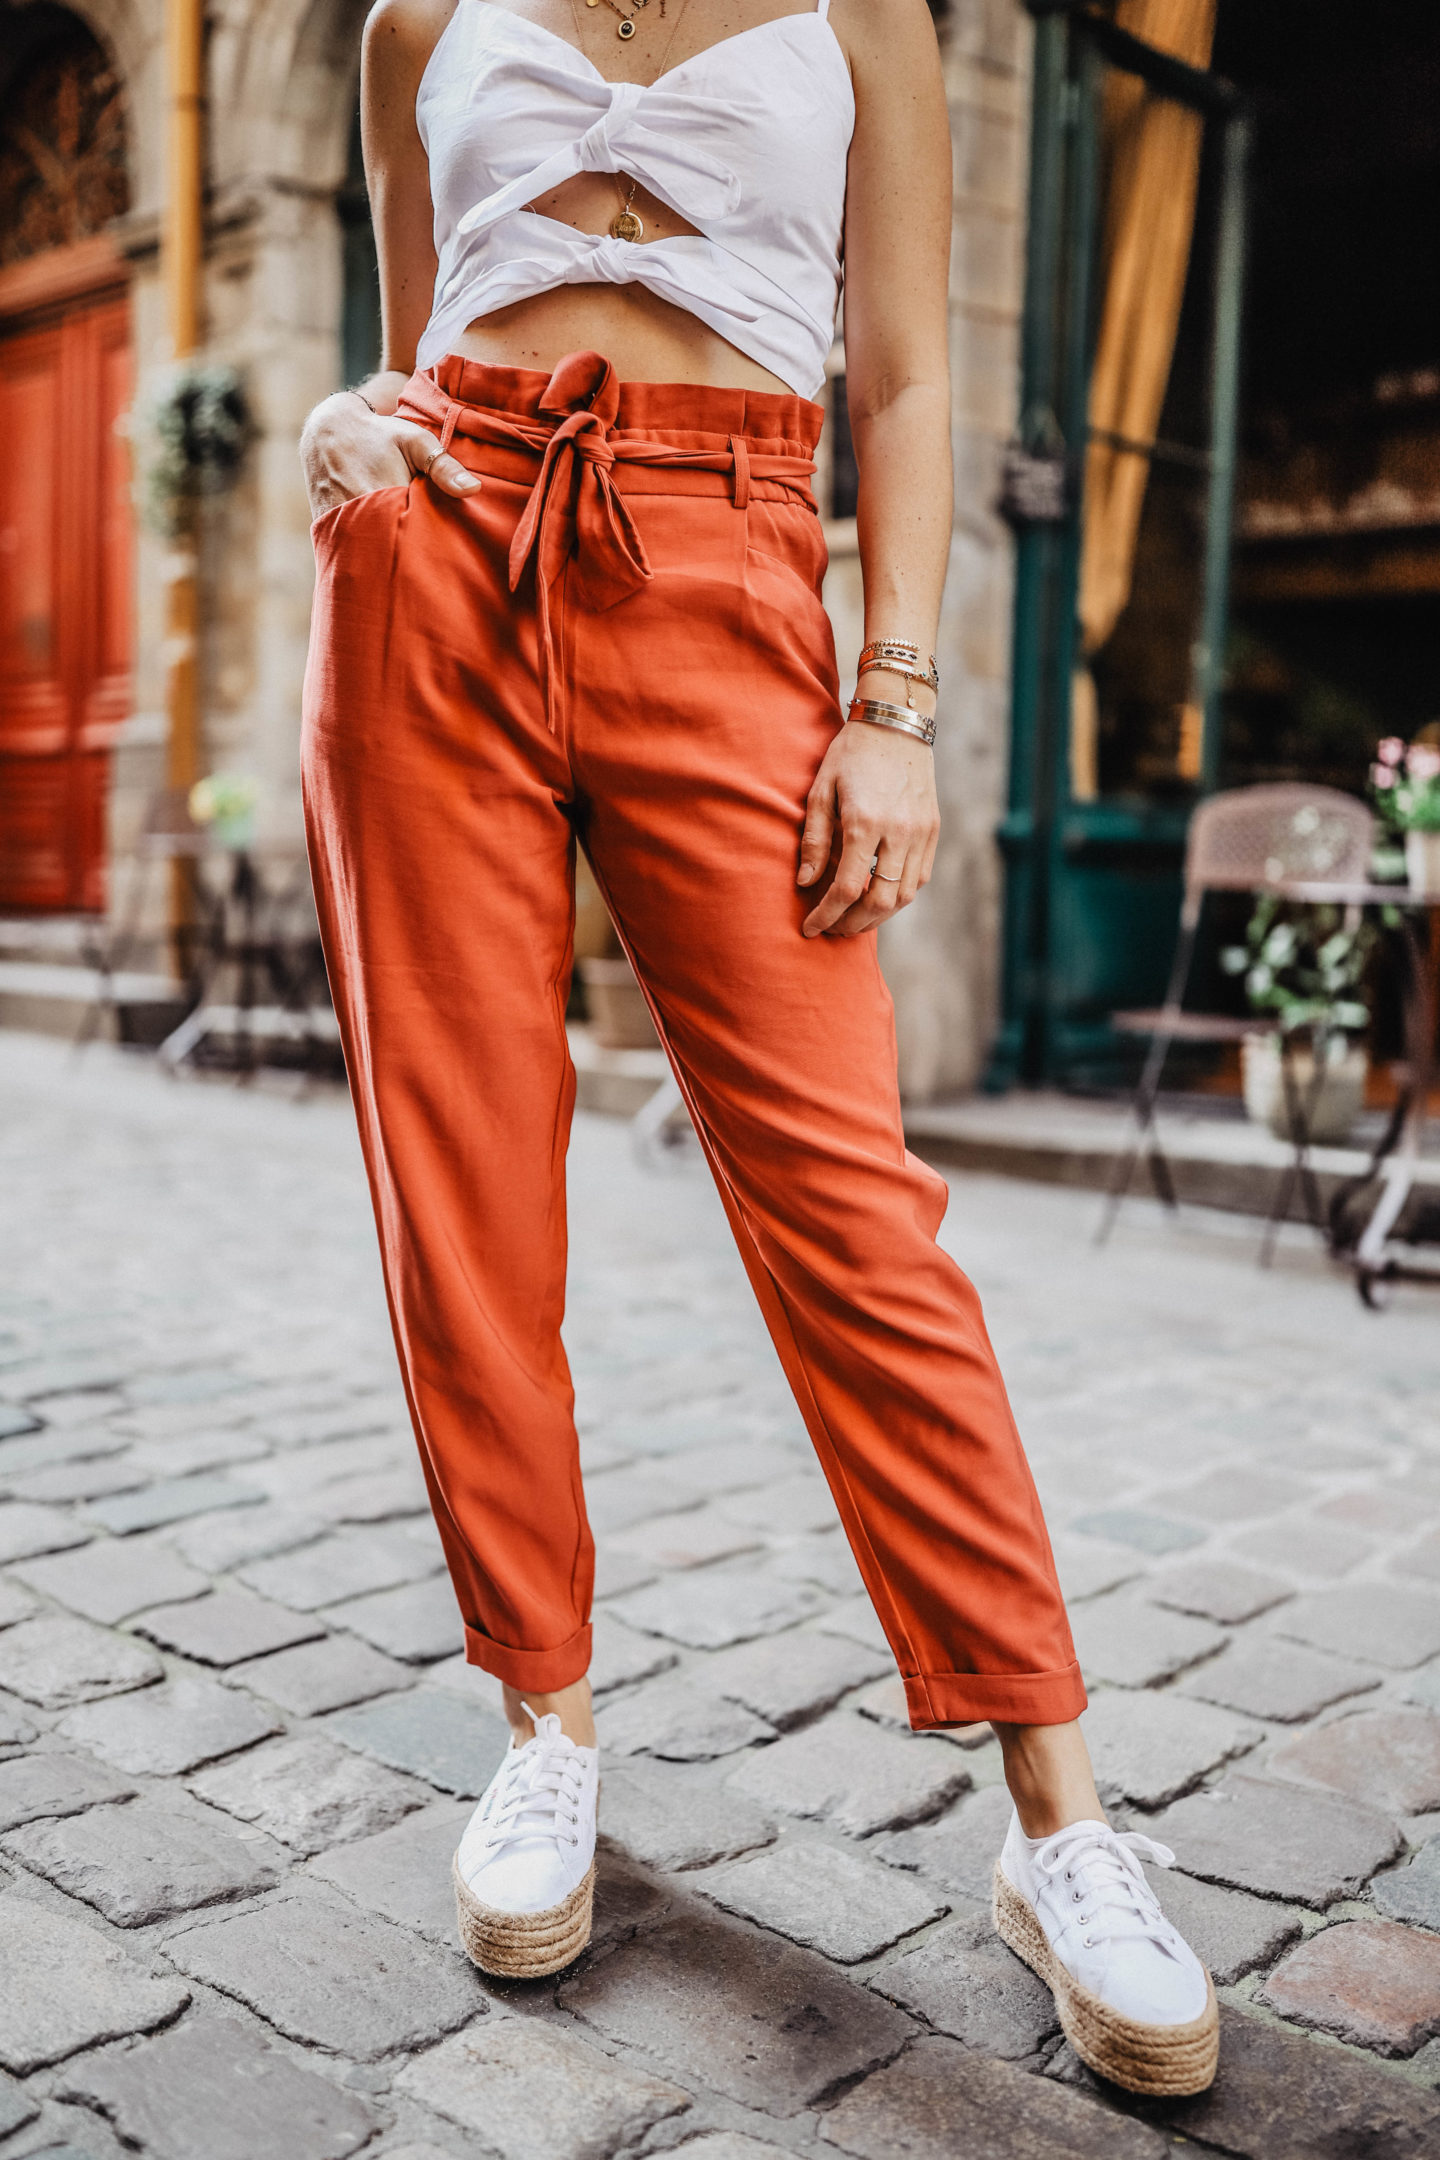 Tendance pantalon carotte Zara marie and mood